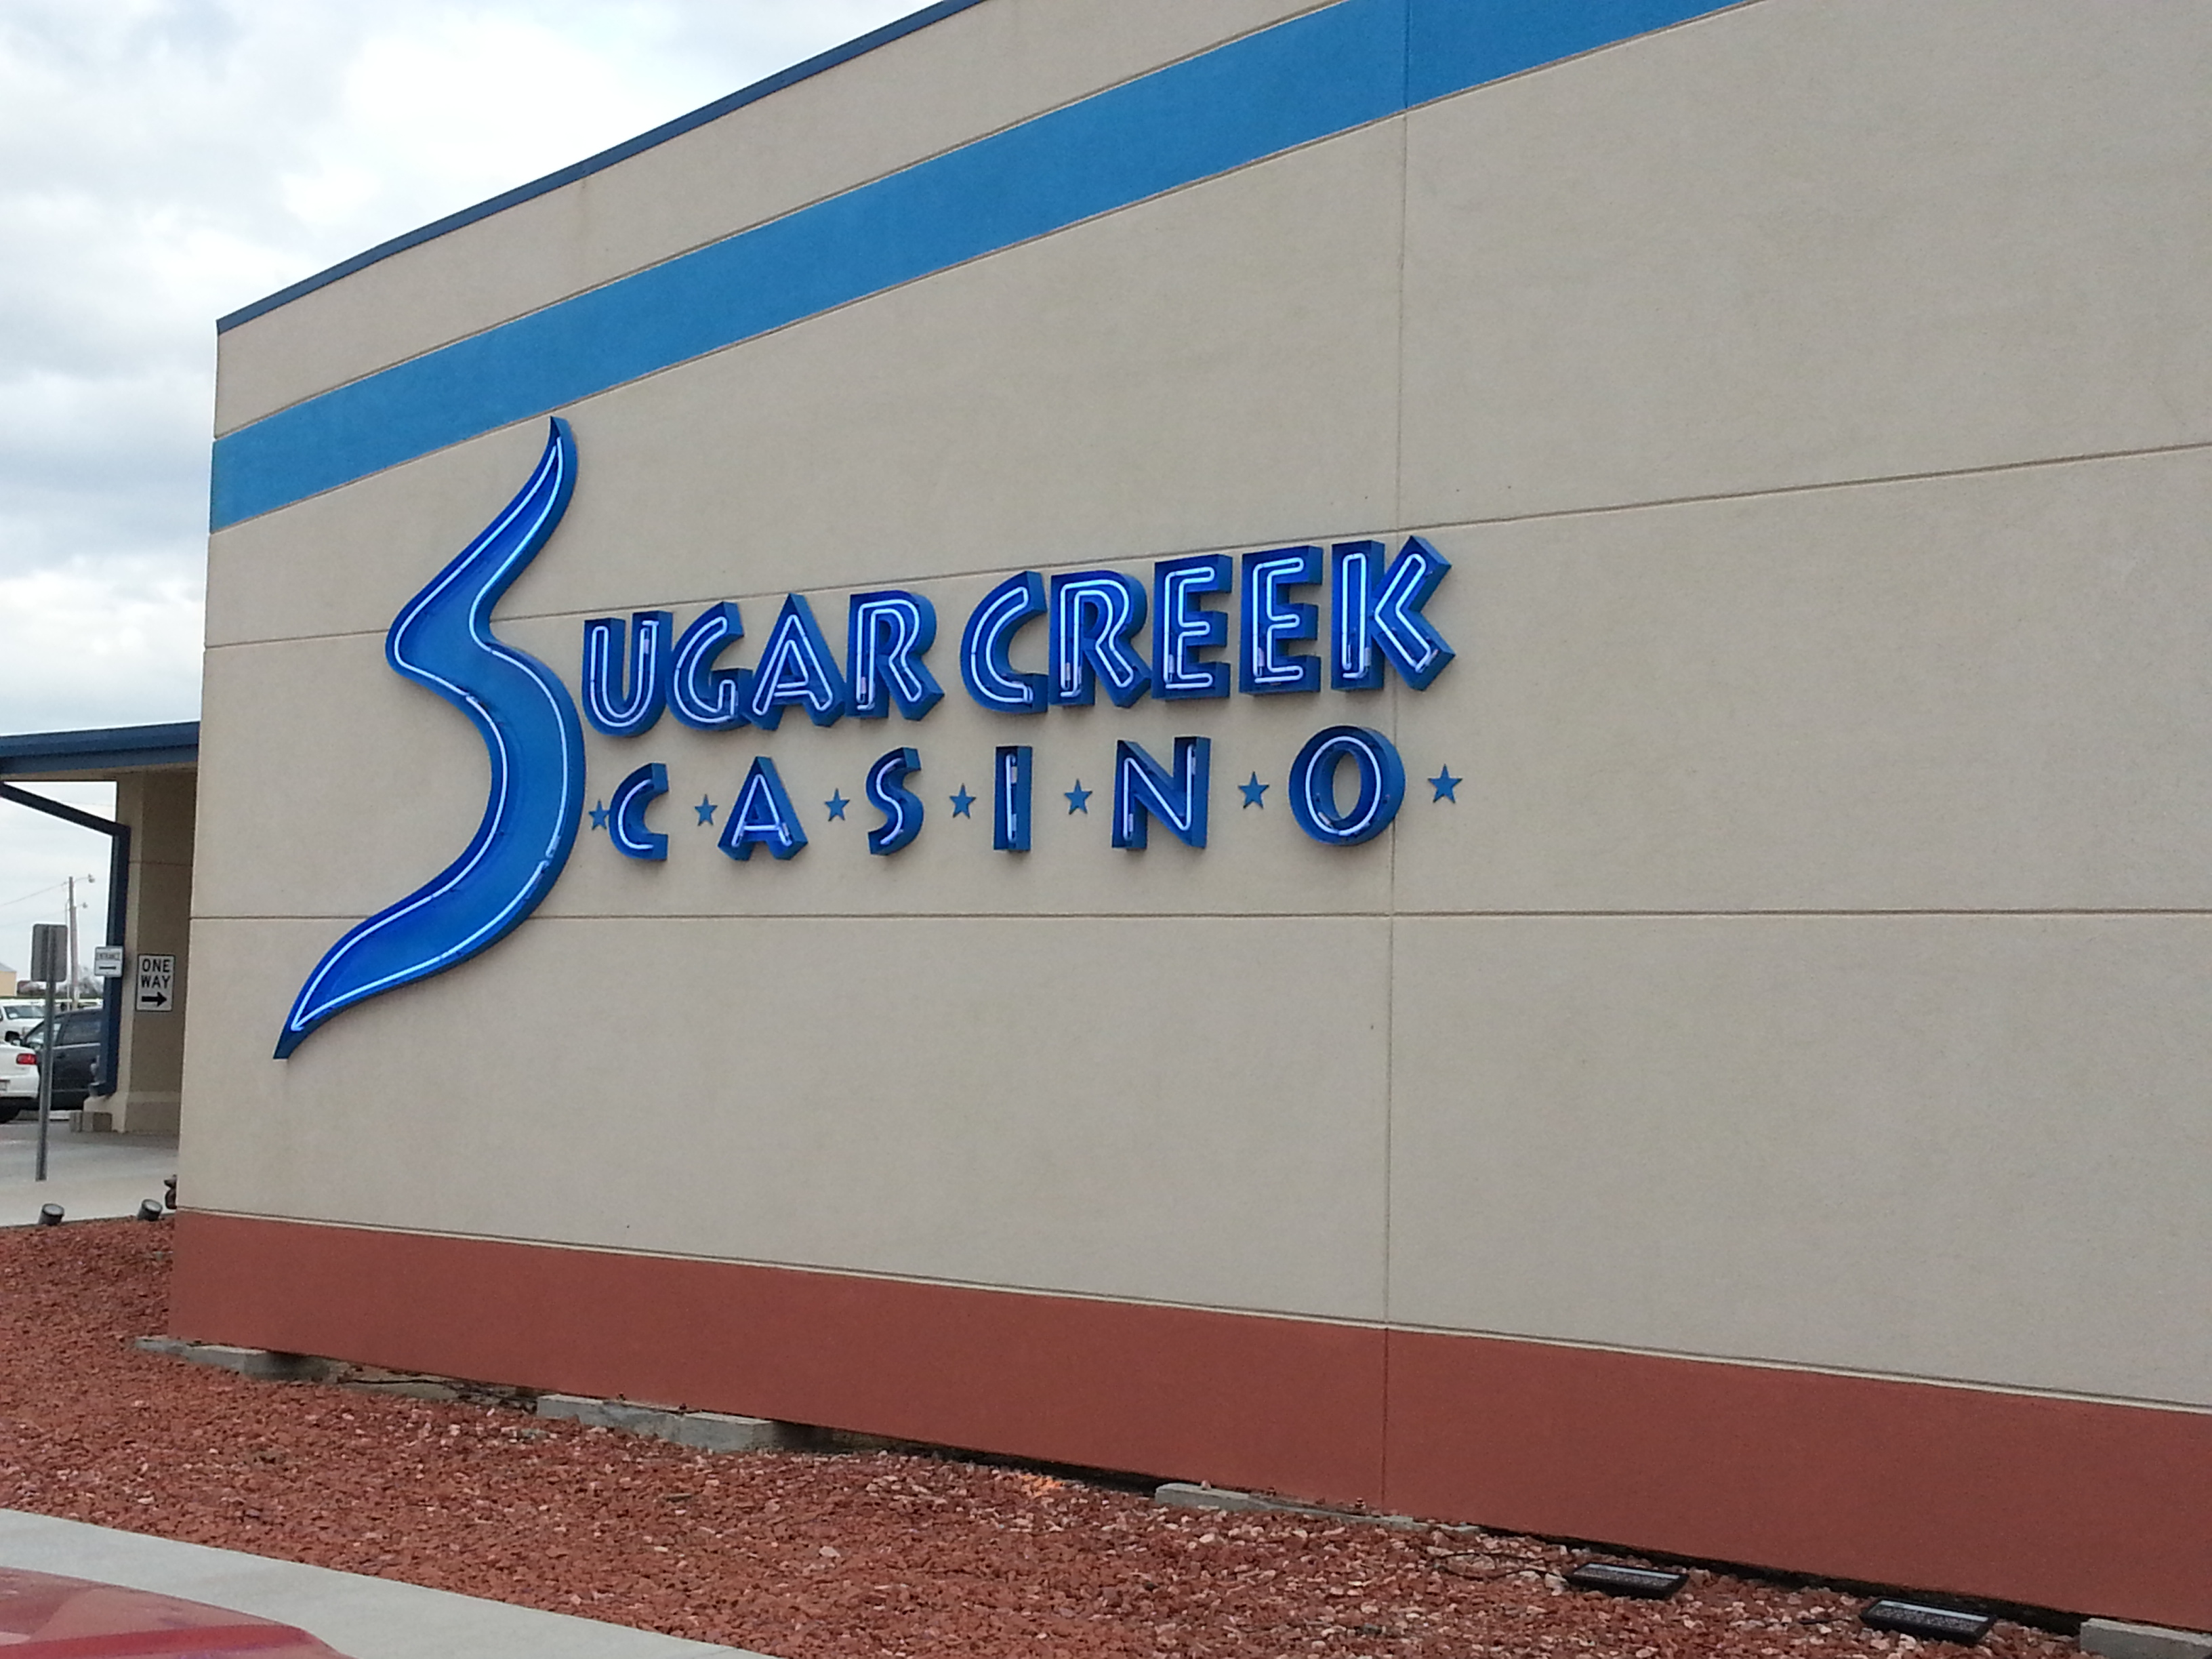 Sugarcreek casino discount bills gambling hall